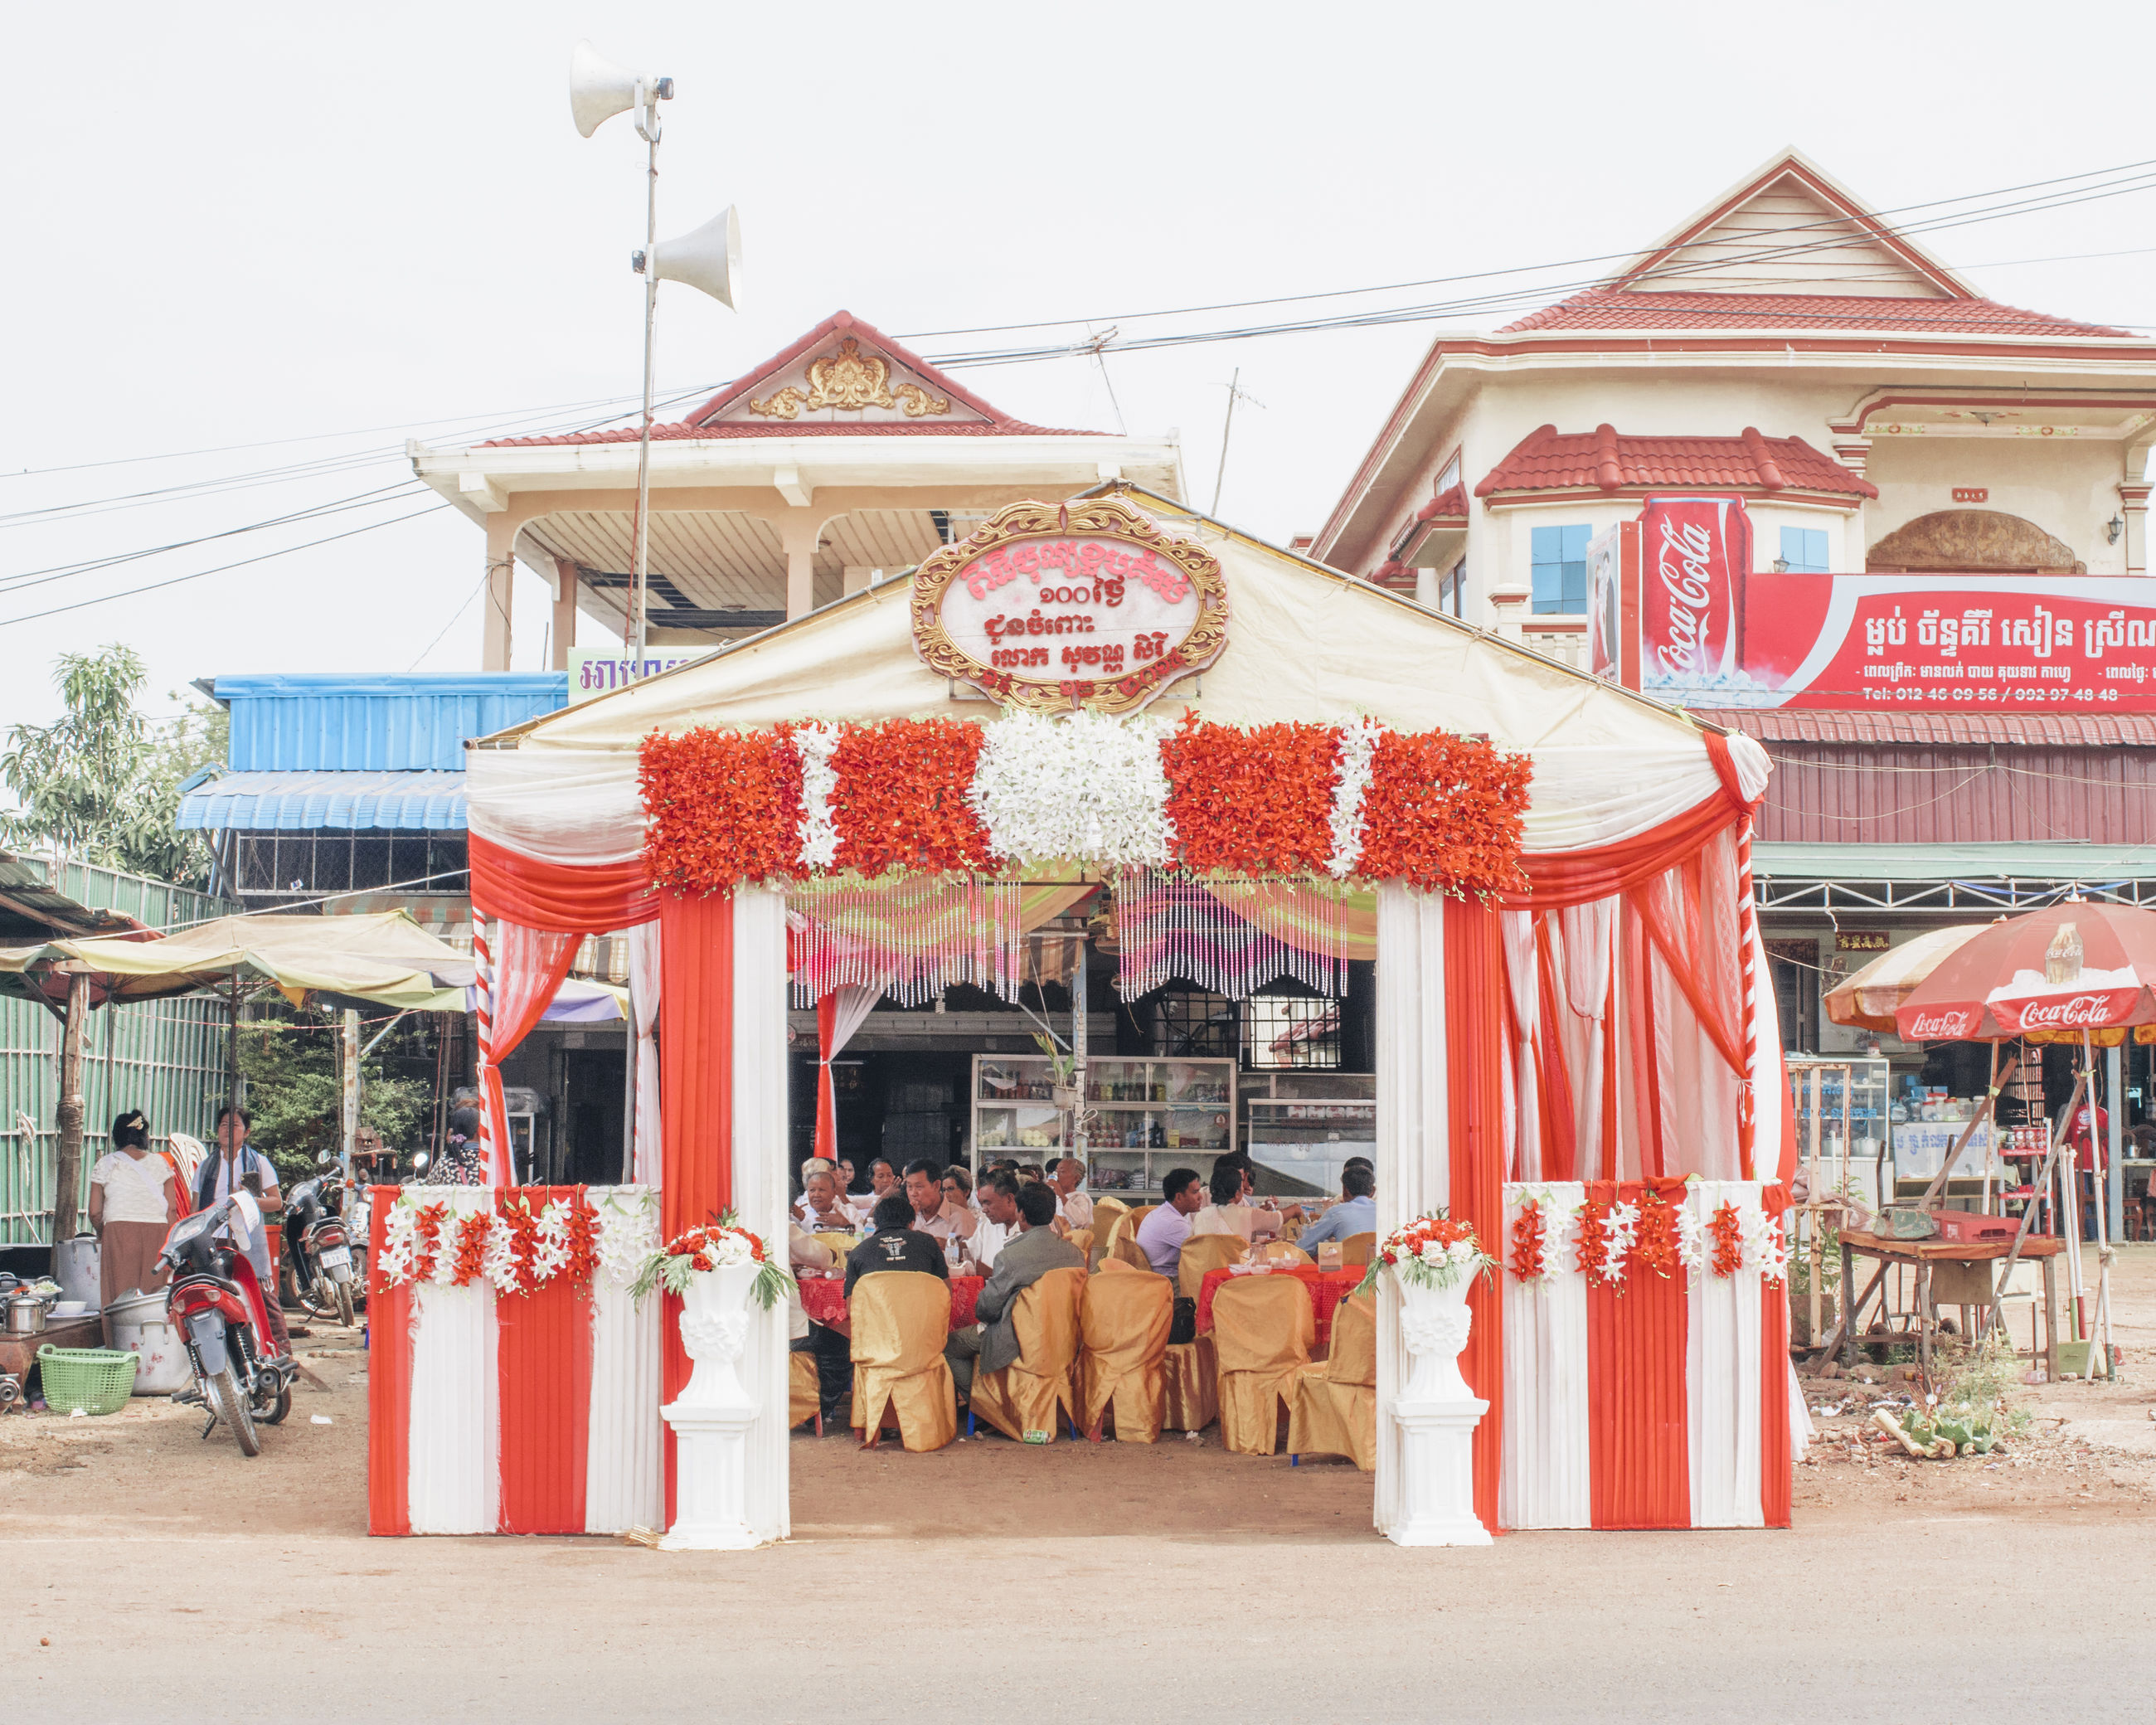 built structure, architecture, building exterior, tradition, religion, cultures, place of worship, spirituality, temple - building, culture, person, large group of people, market, clear sky, roof, day, market stall, multi colored